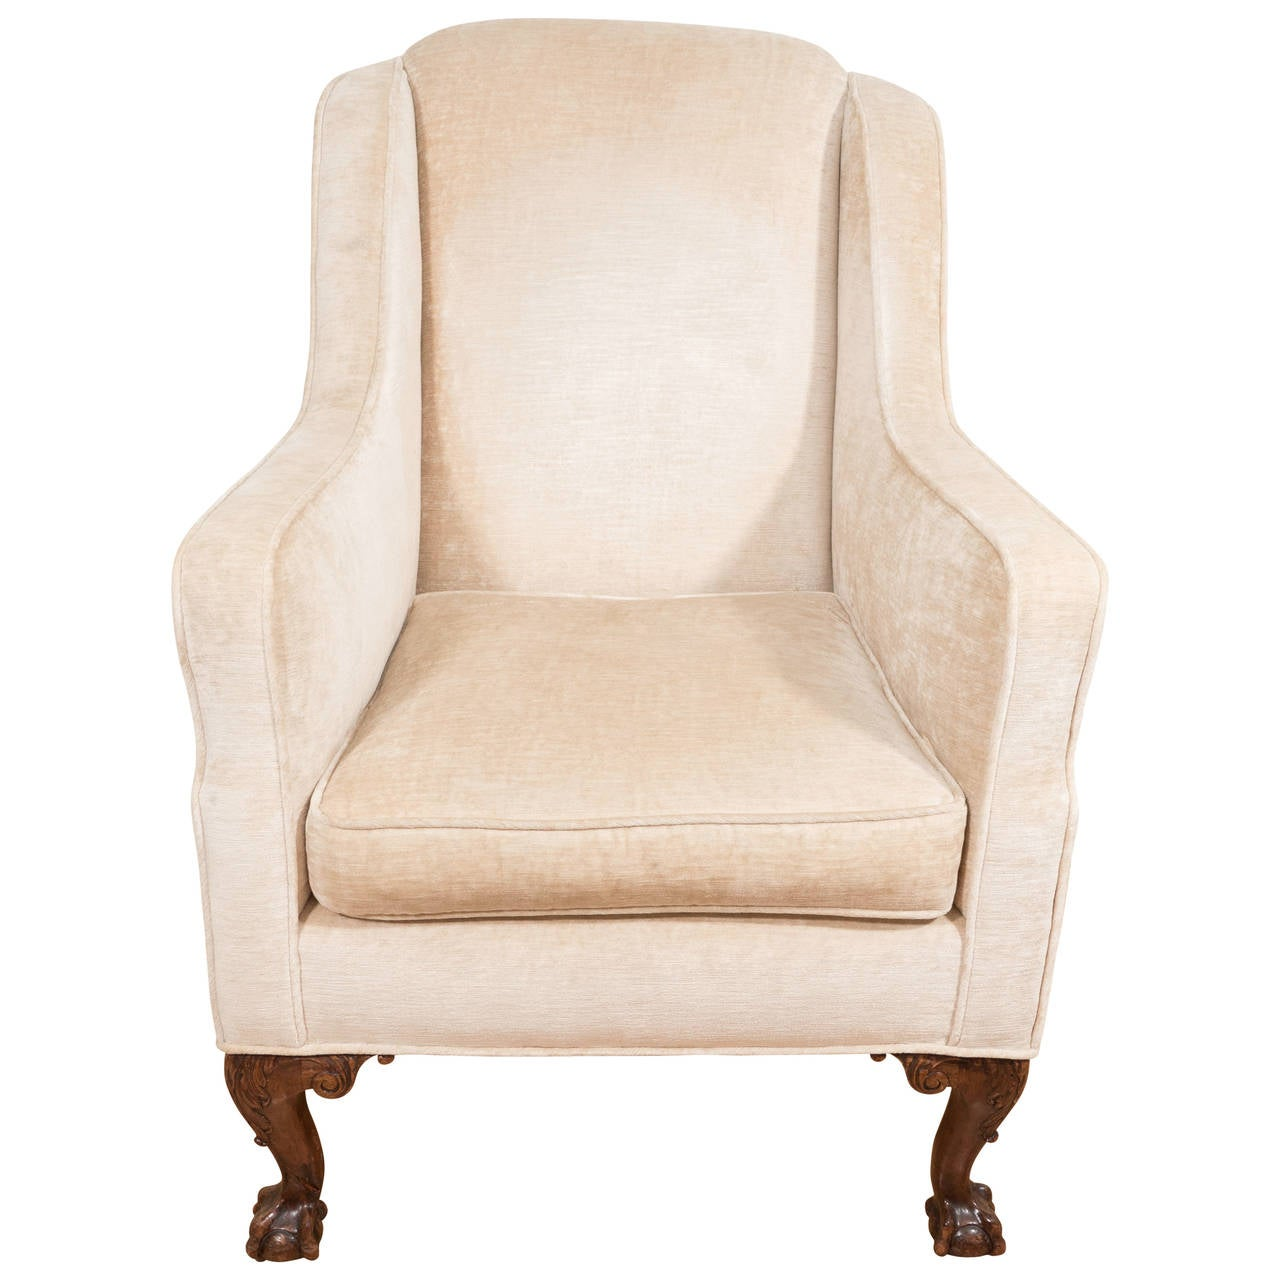 fireside wingback armchair with claw and ball feet in